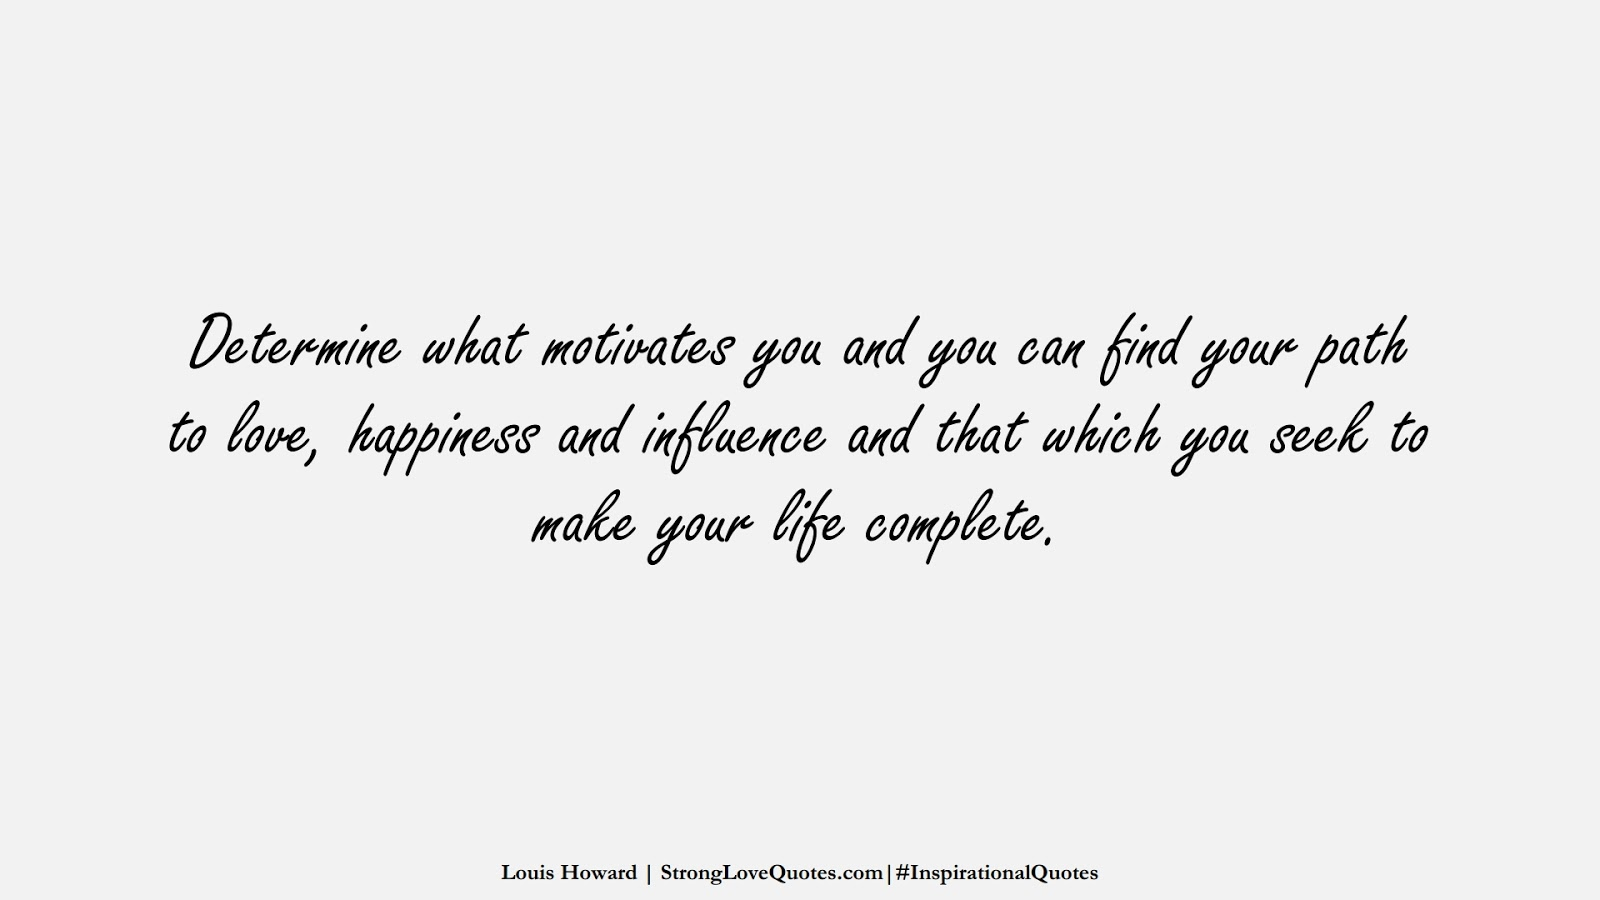 Determine what motivates you and you can find your path to love, happiness and influence and that which you seek to make your life complete. (Louis Howard);  #InspirationalQuotes